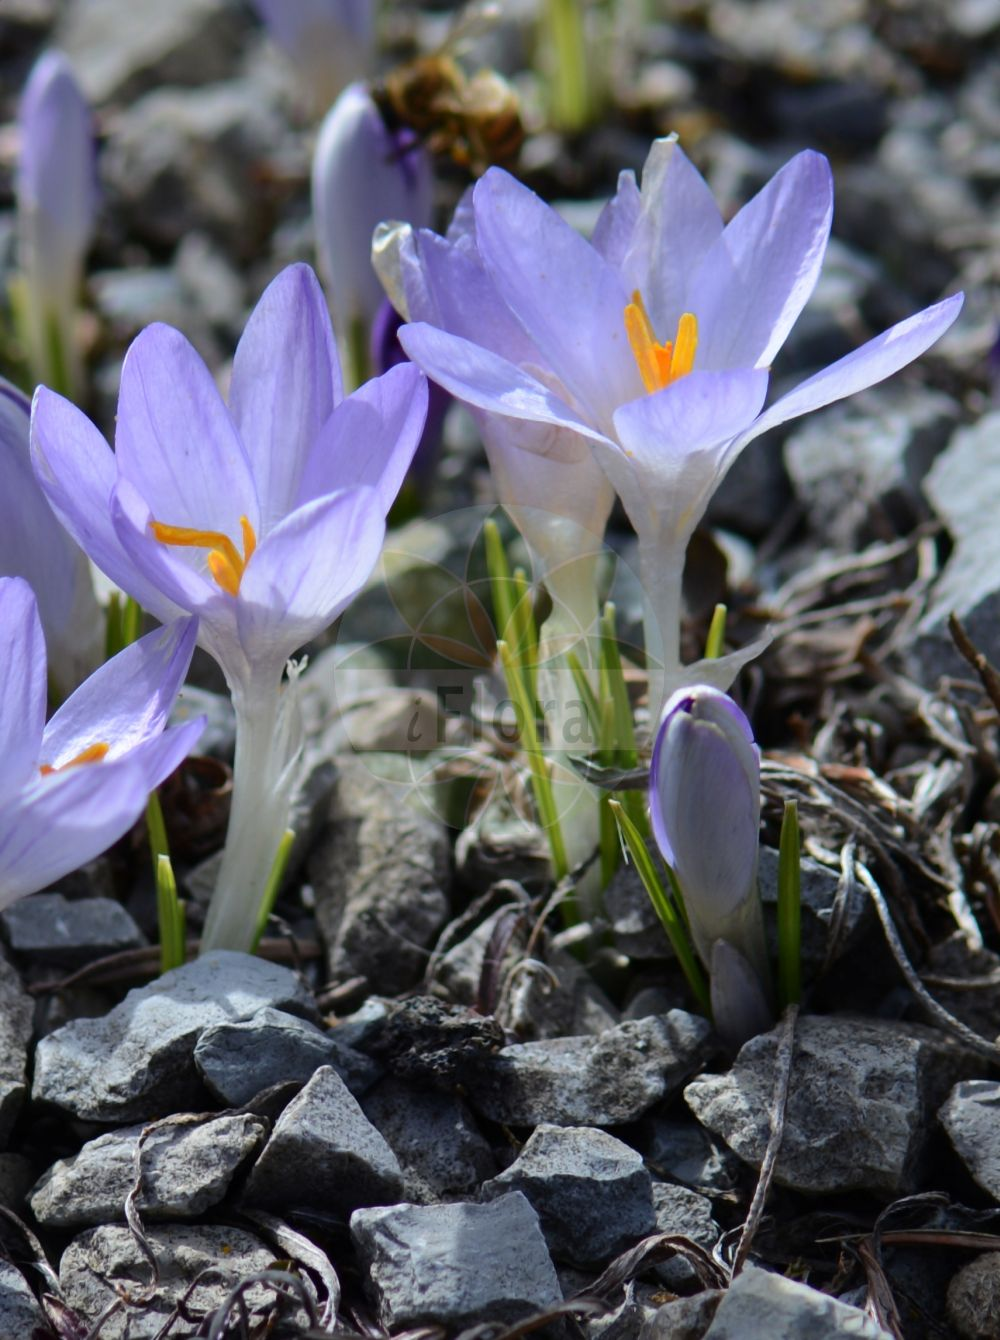 Foto von Crocus vernus subsp. vernus. Das Bild zeigt Blatt und Bluete. Das Foto wurde in Jena, Thueringen, Deutschland aufgenommen. ---- Photo of Crocus vernus subsp. vernus.The image is showing leaf and flower.The picture was taken in Jena, Thuringia, Germany. (Crocus vernus subsp. vernus,Ixia vernalis,Crocus,Krokus,Crocus,Iridaceae,Schwertliliengewaechse,Iris family,Blatt,Bluete,leaf,flower)